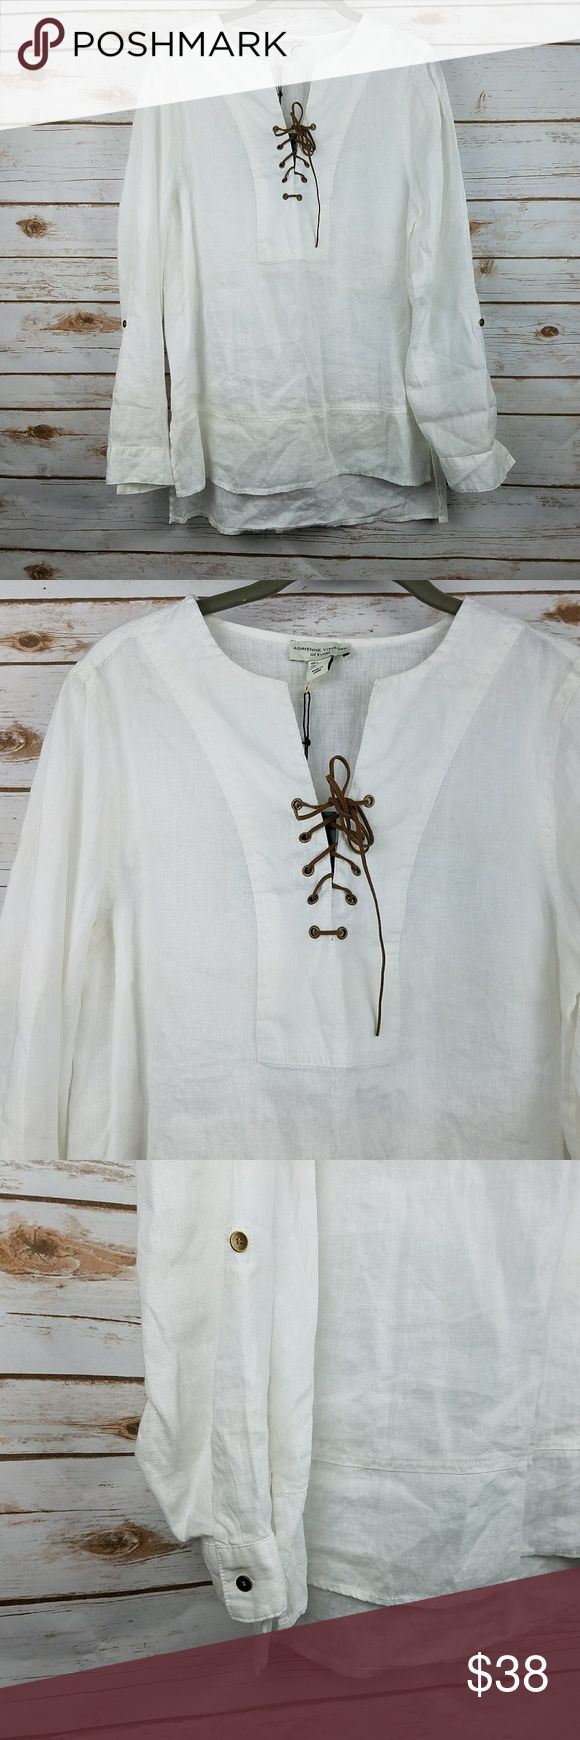 """ADRIENNE VITTADINI White Linen Lace Up Tunic Women's Adrienne Vittadini Hi-Lo White Linen Tunic Top New with tags  Tag Size: L pit to pit: 20"""" shoulder to hem (front): 26"""" sleeve length: 24"""" A5-16 Adrienne Vittadini Tops Tunics"""